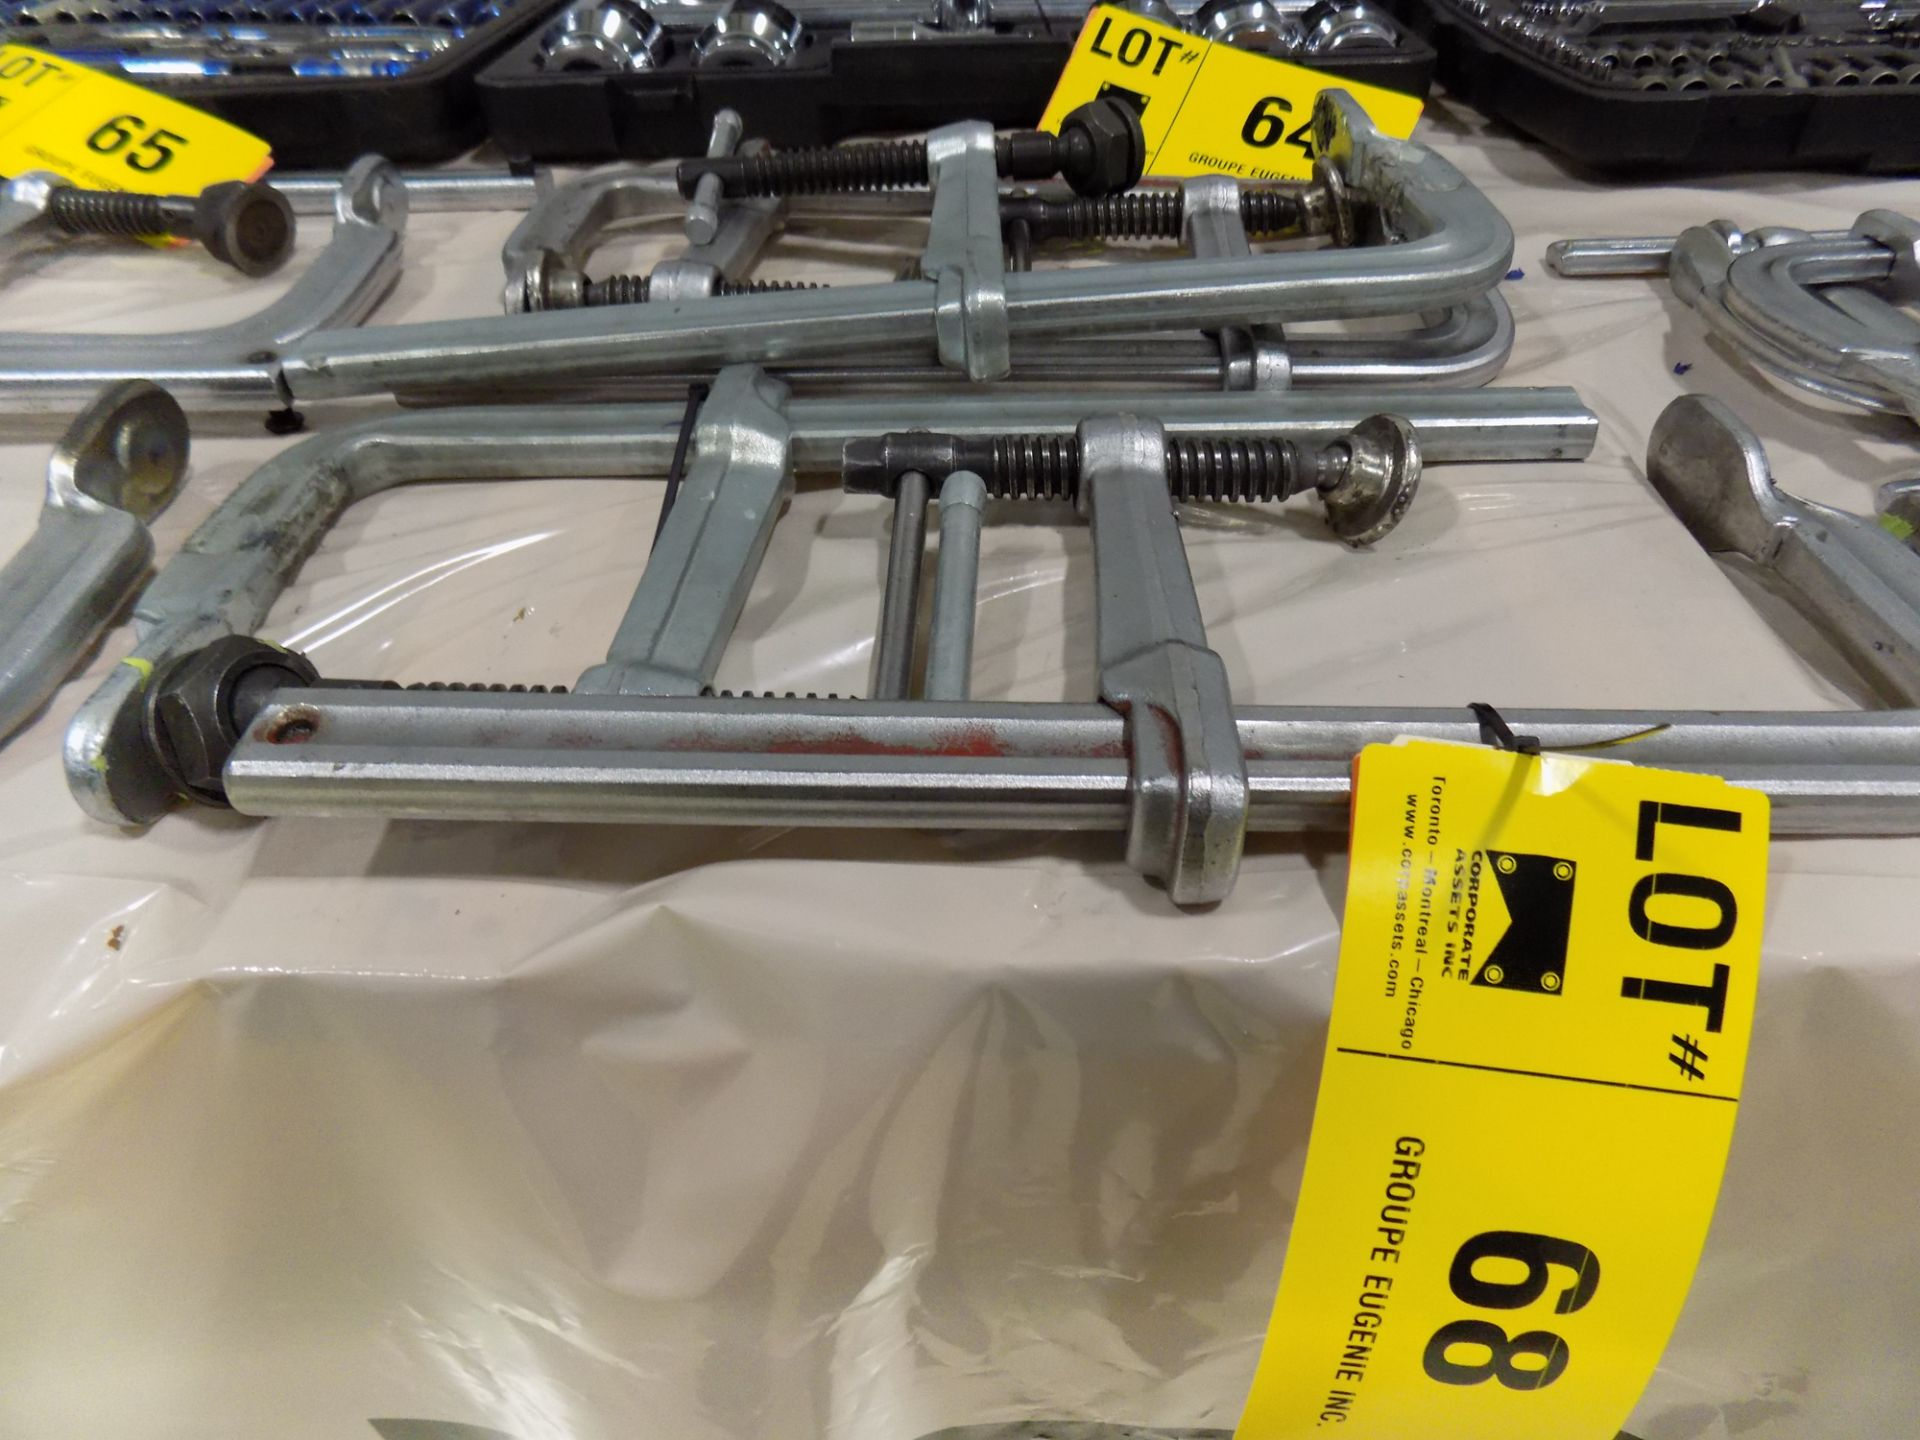 Lot 68 - LOT/ (5) BAR CLAMPS